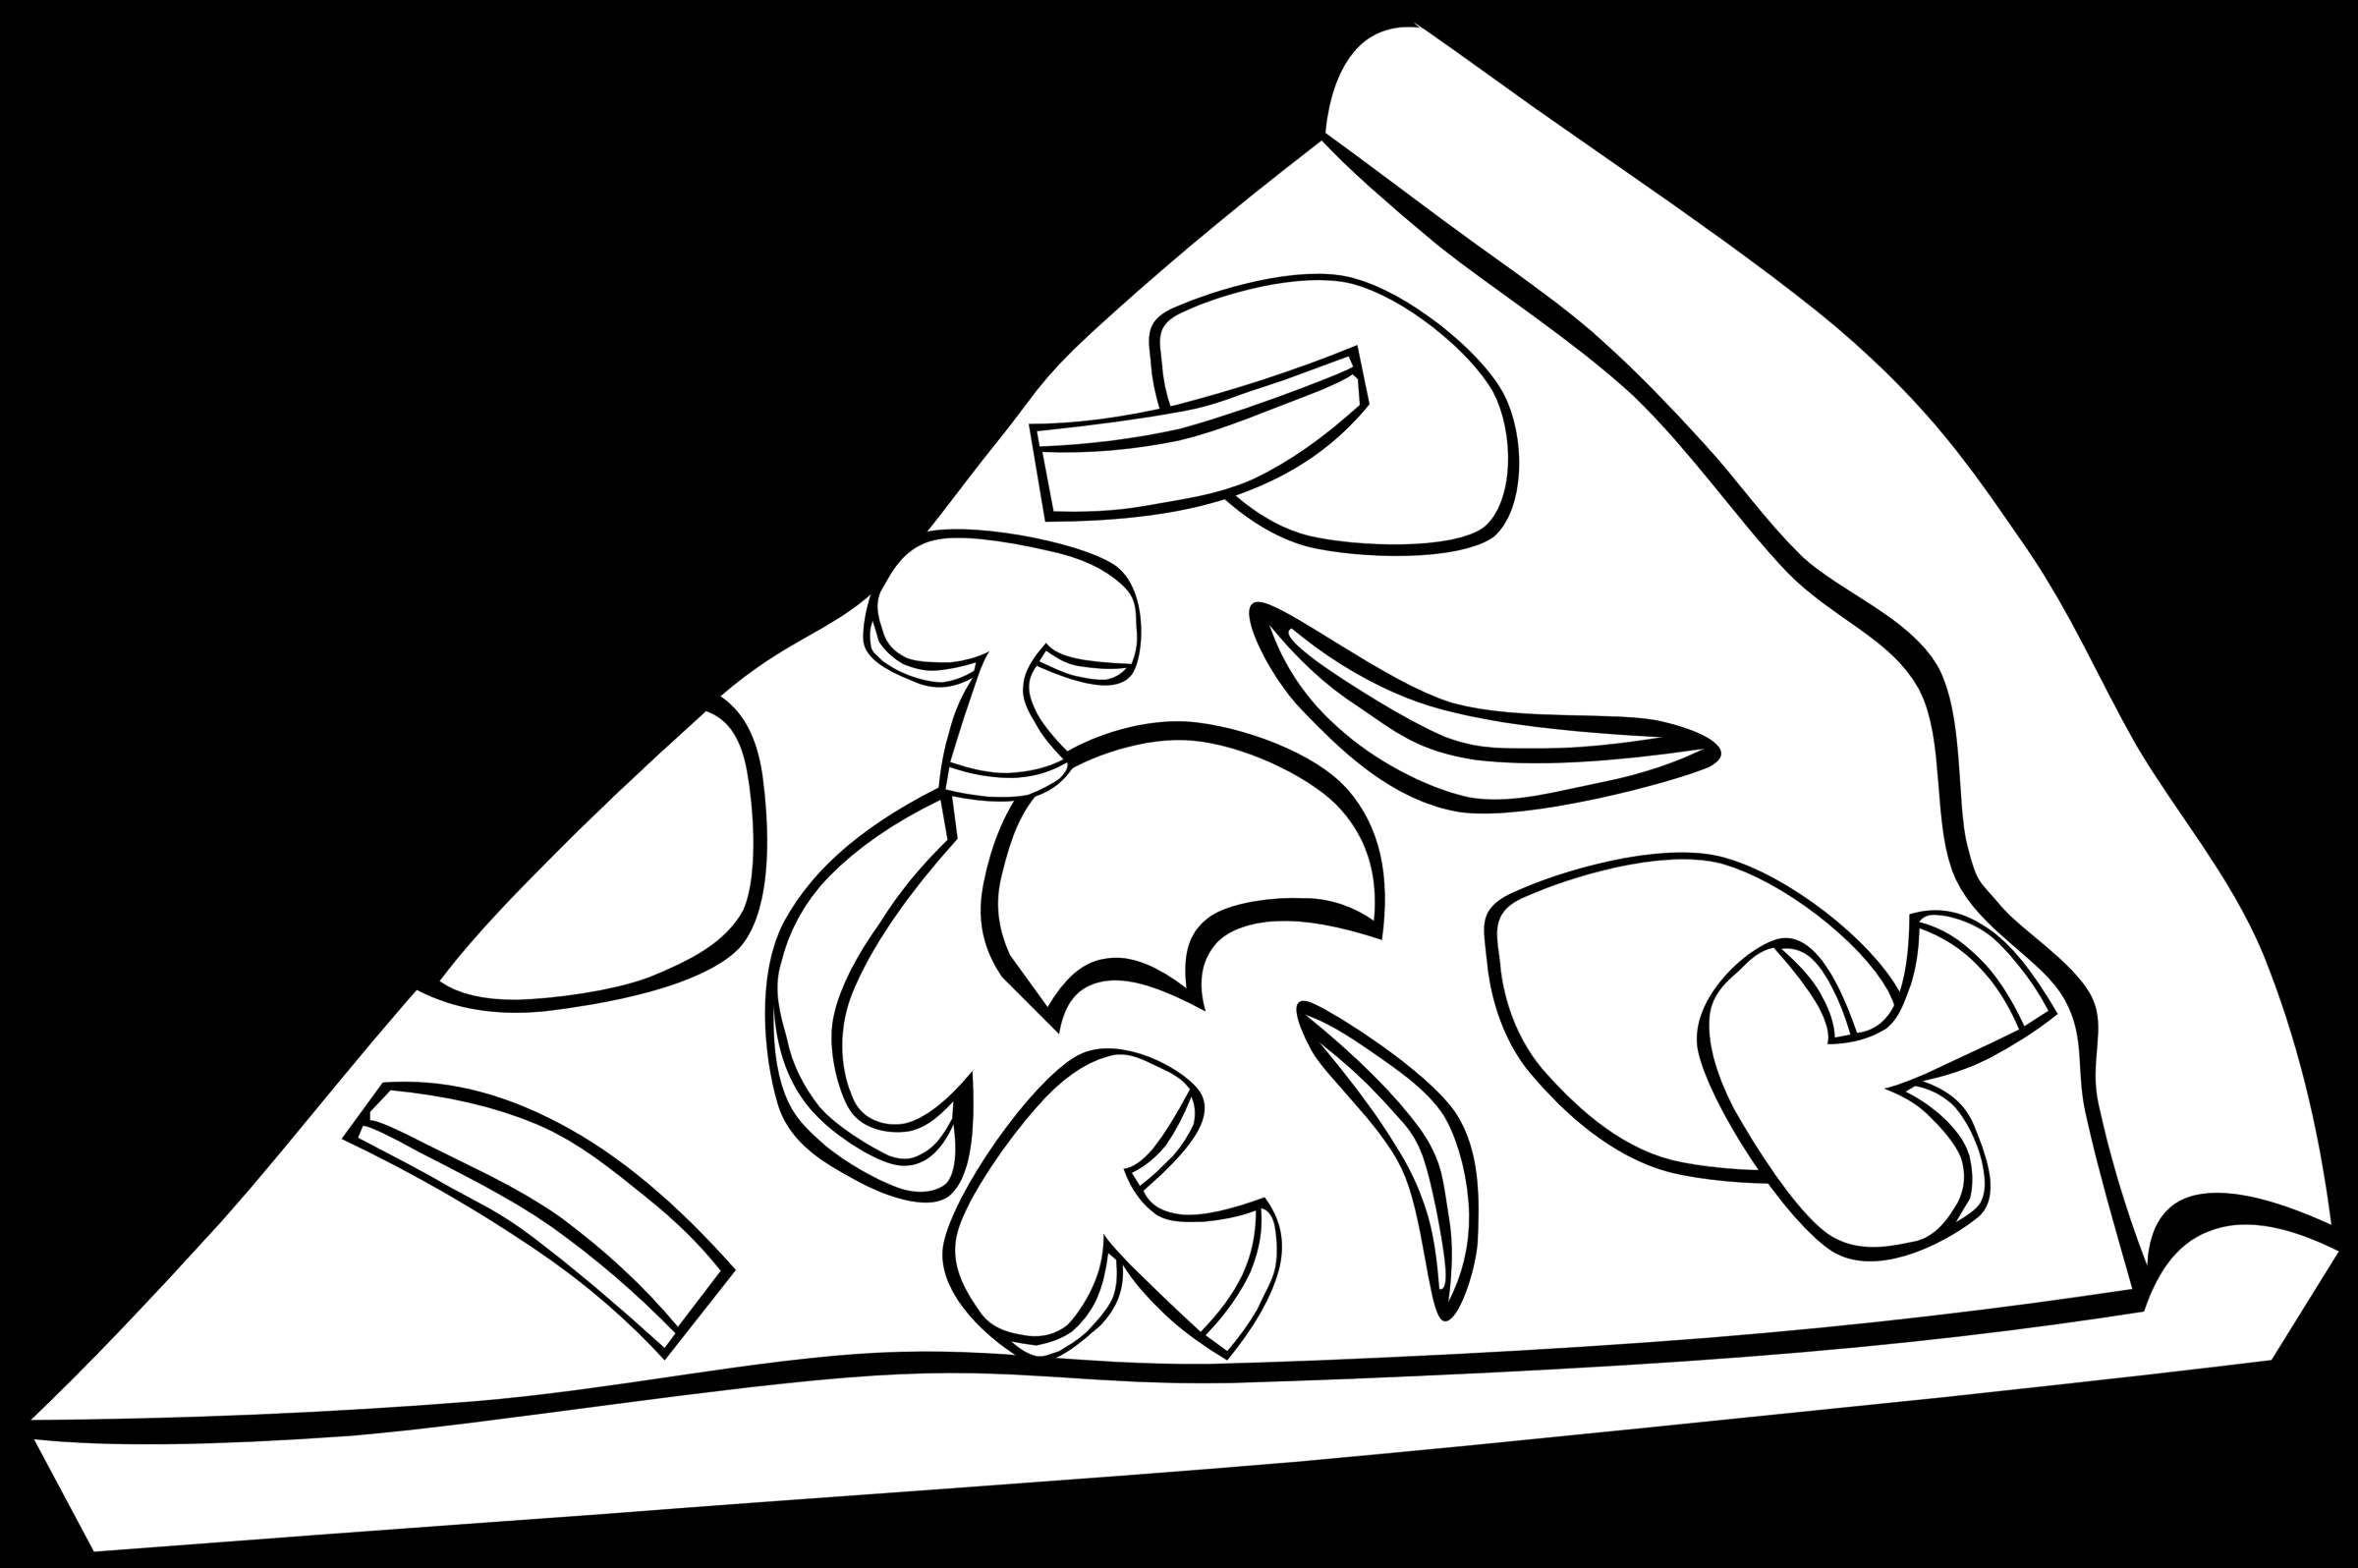 healthy food coloring pages - unhealthy food clipart black and white